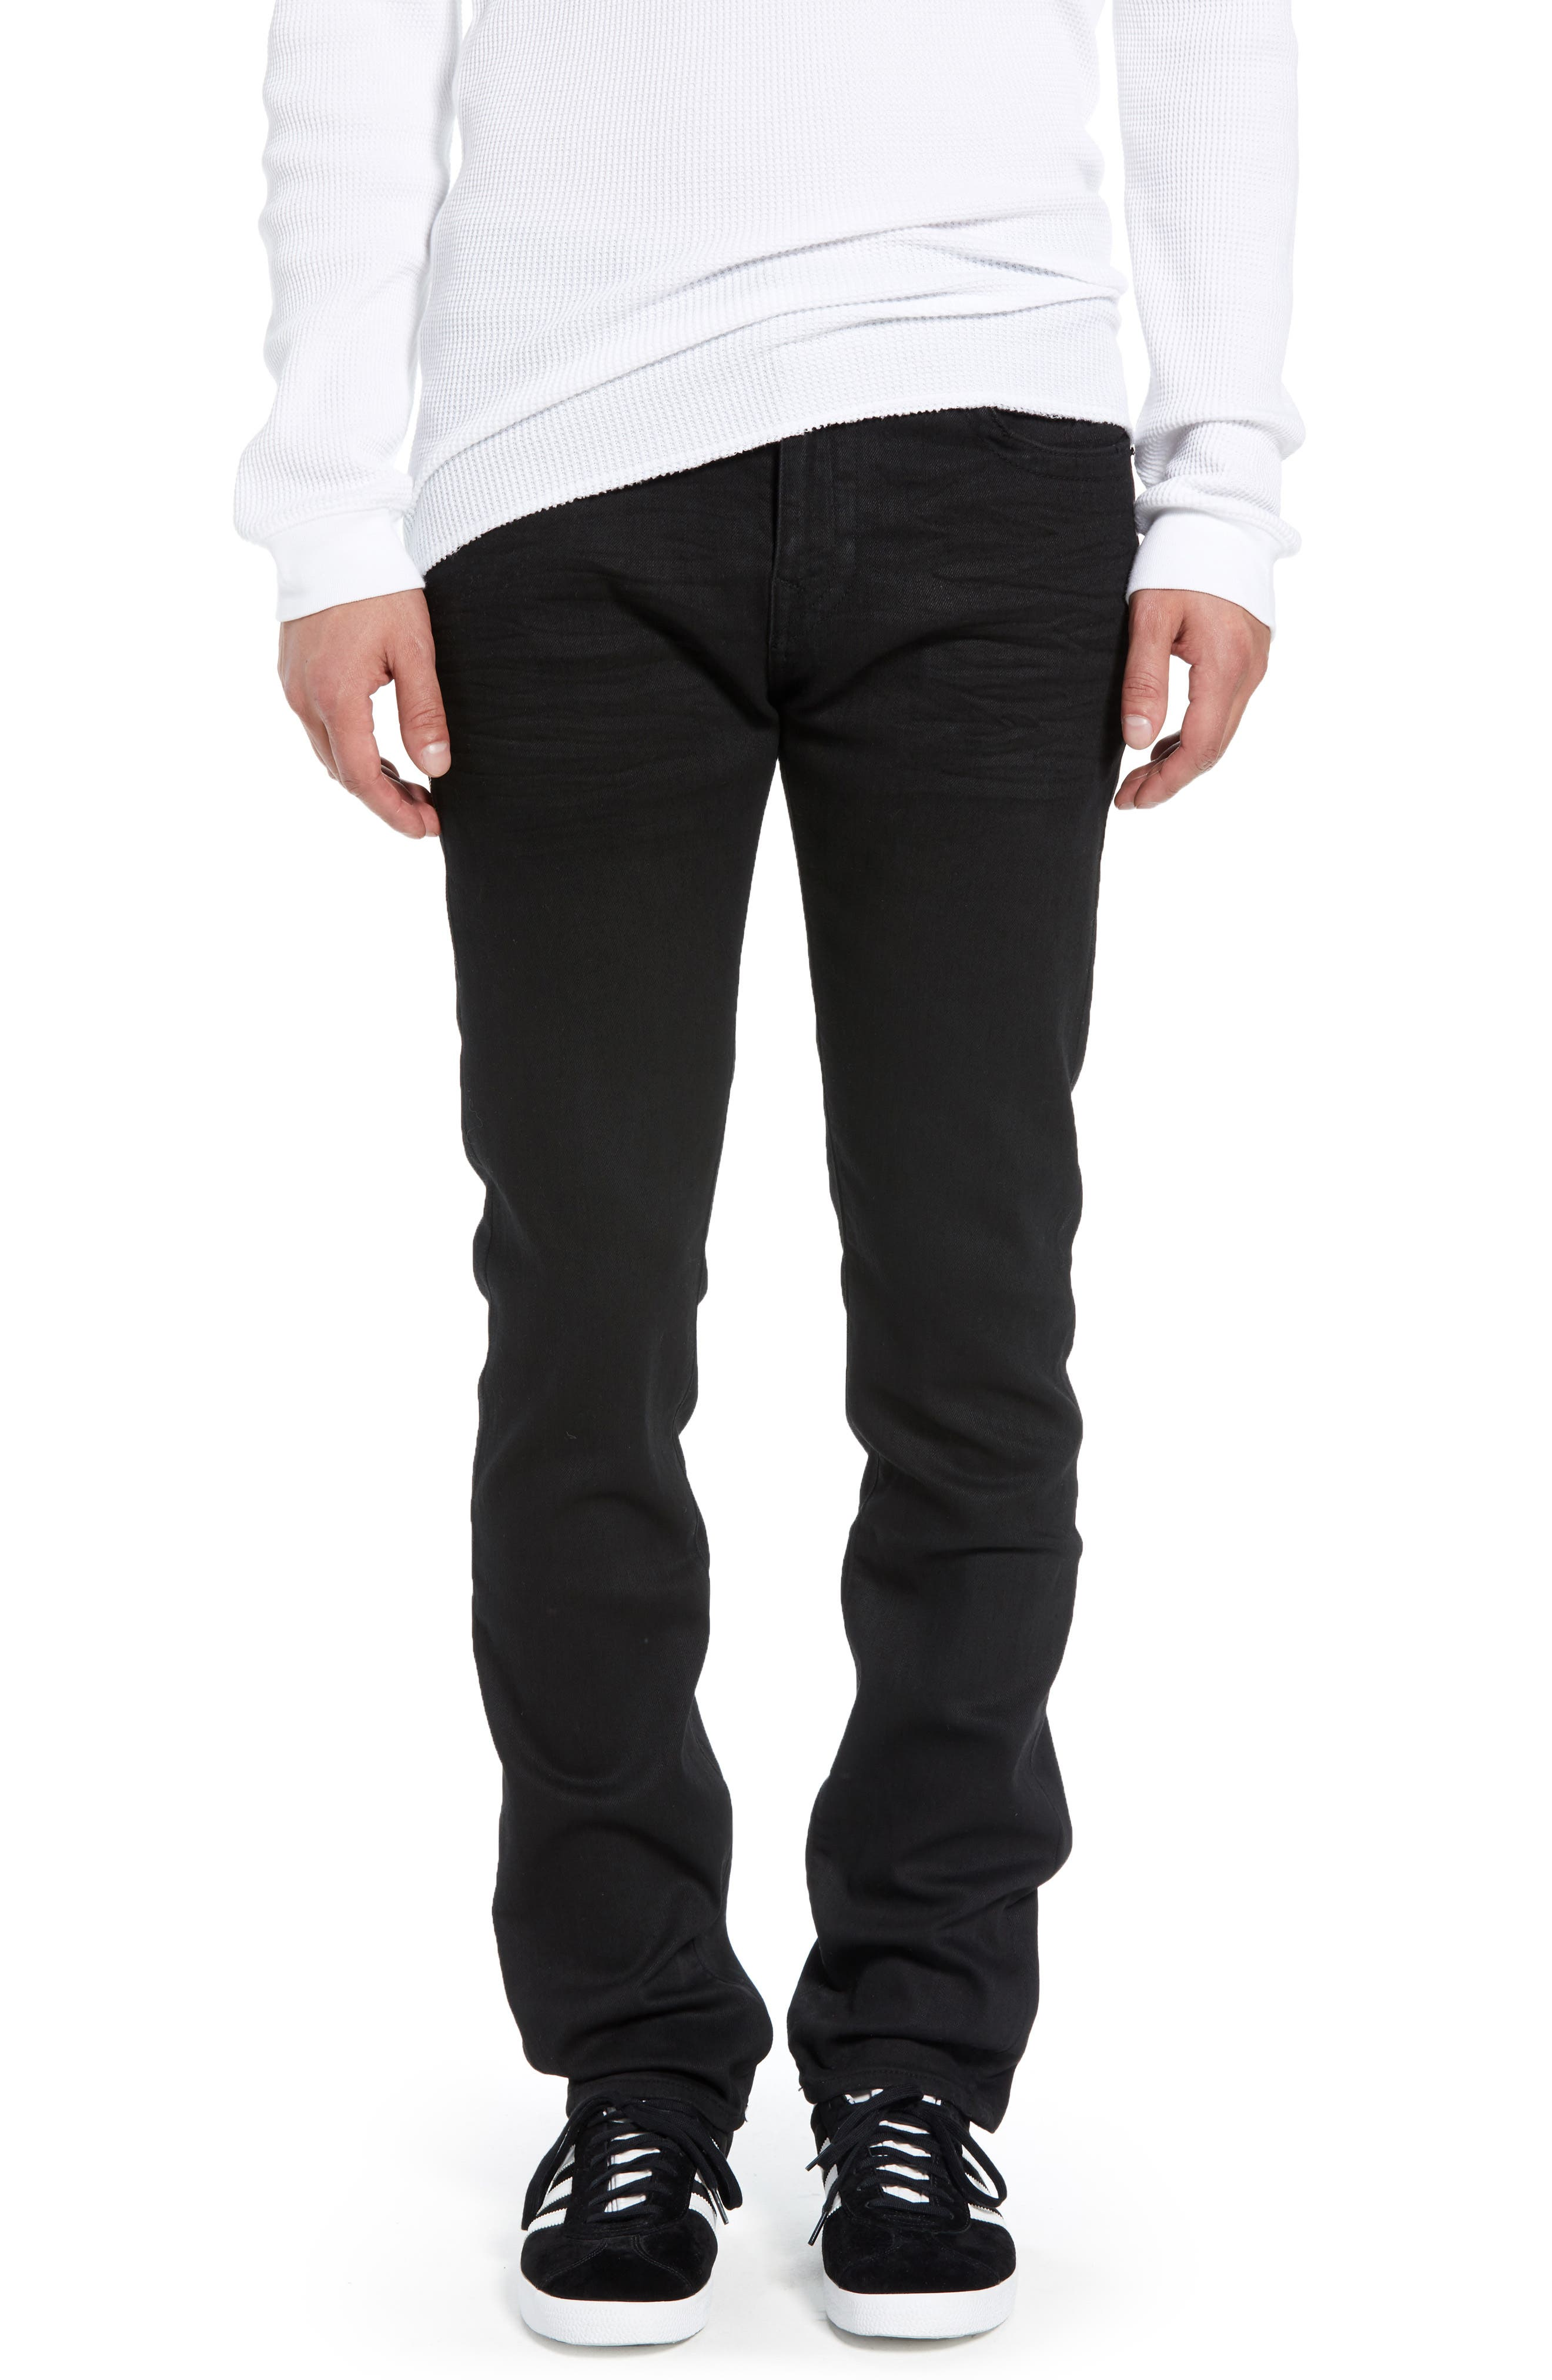 Rocco Skinny Fit Jeans,                             Main thumbnail 1, color,                             MIDNIGHT BLACK COATED